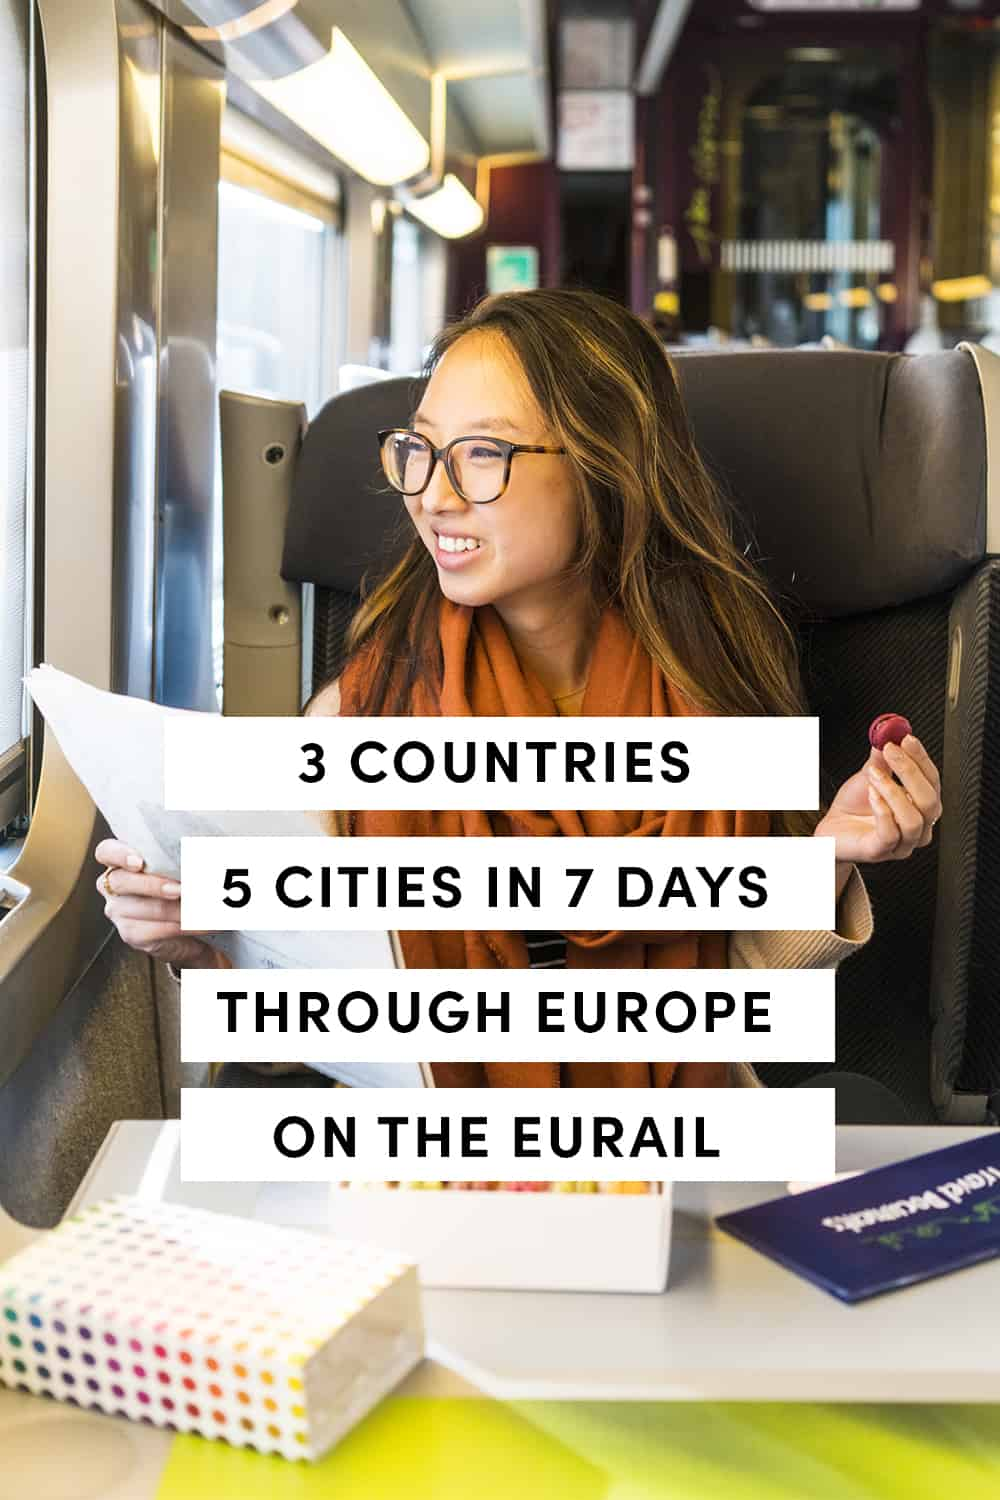 Travel Through Europe On The Eurail